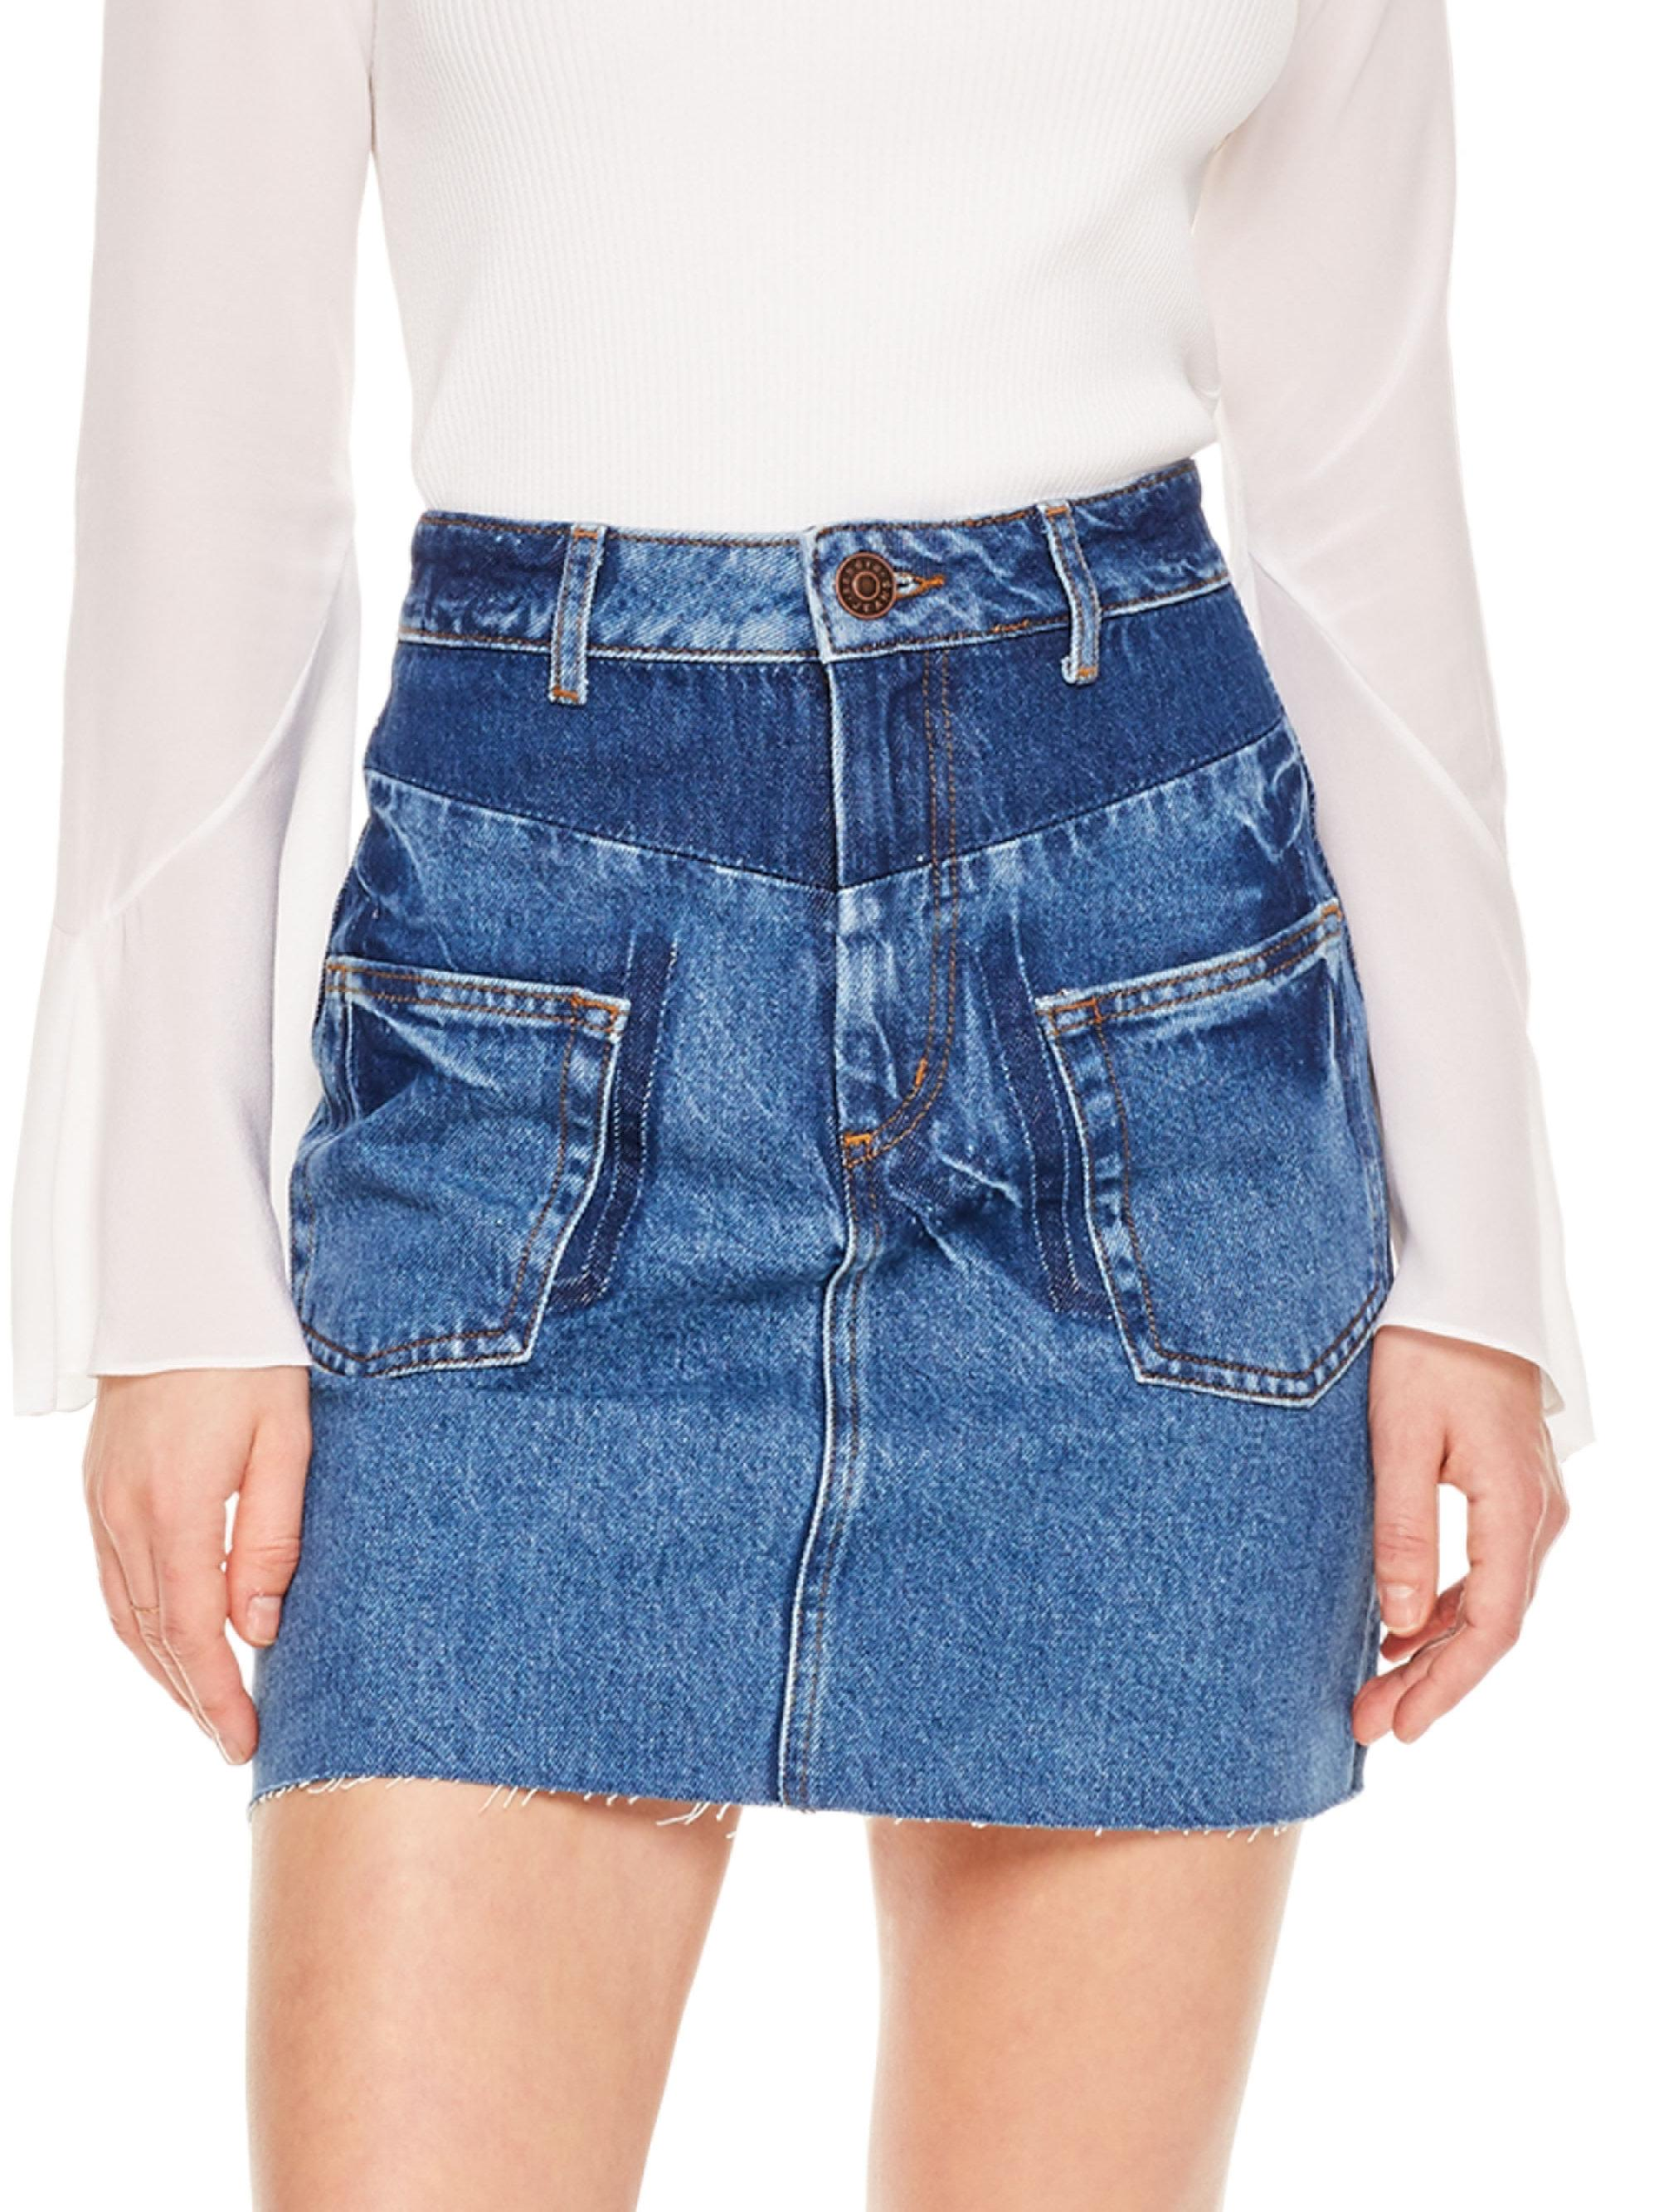 bcd2e0323a Gallery. Previously sold at: Saks Fifth Avenue · Women's Button Down Skirts  Women's Denim Skirts